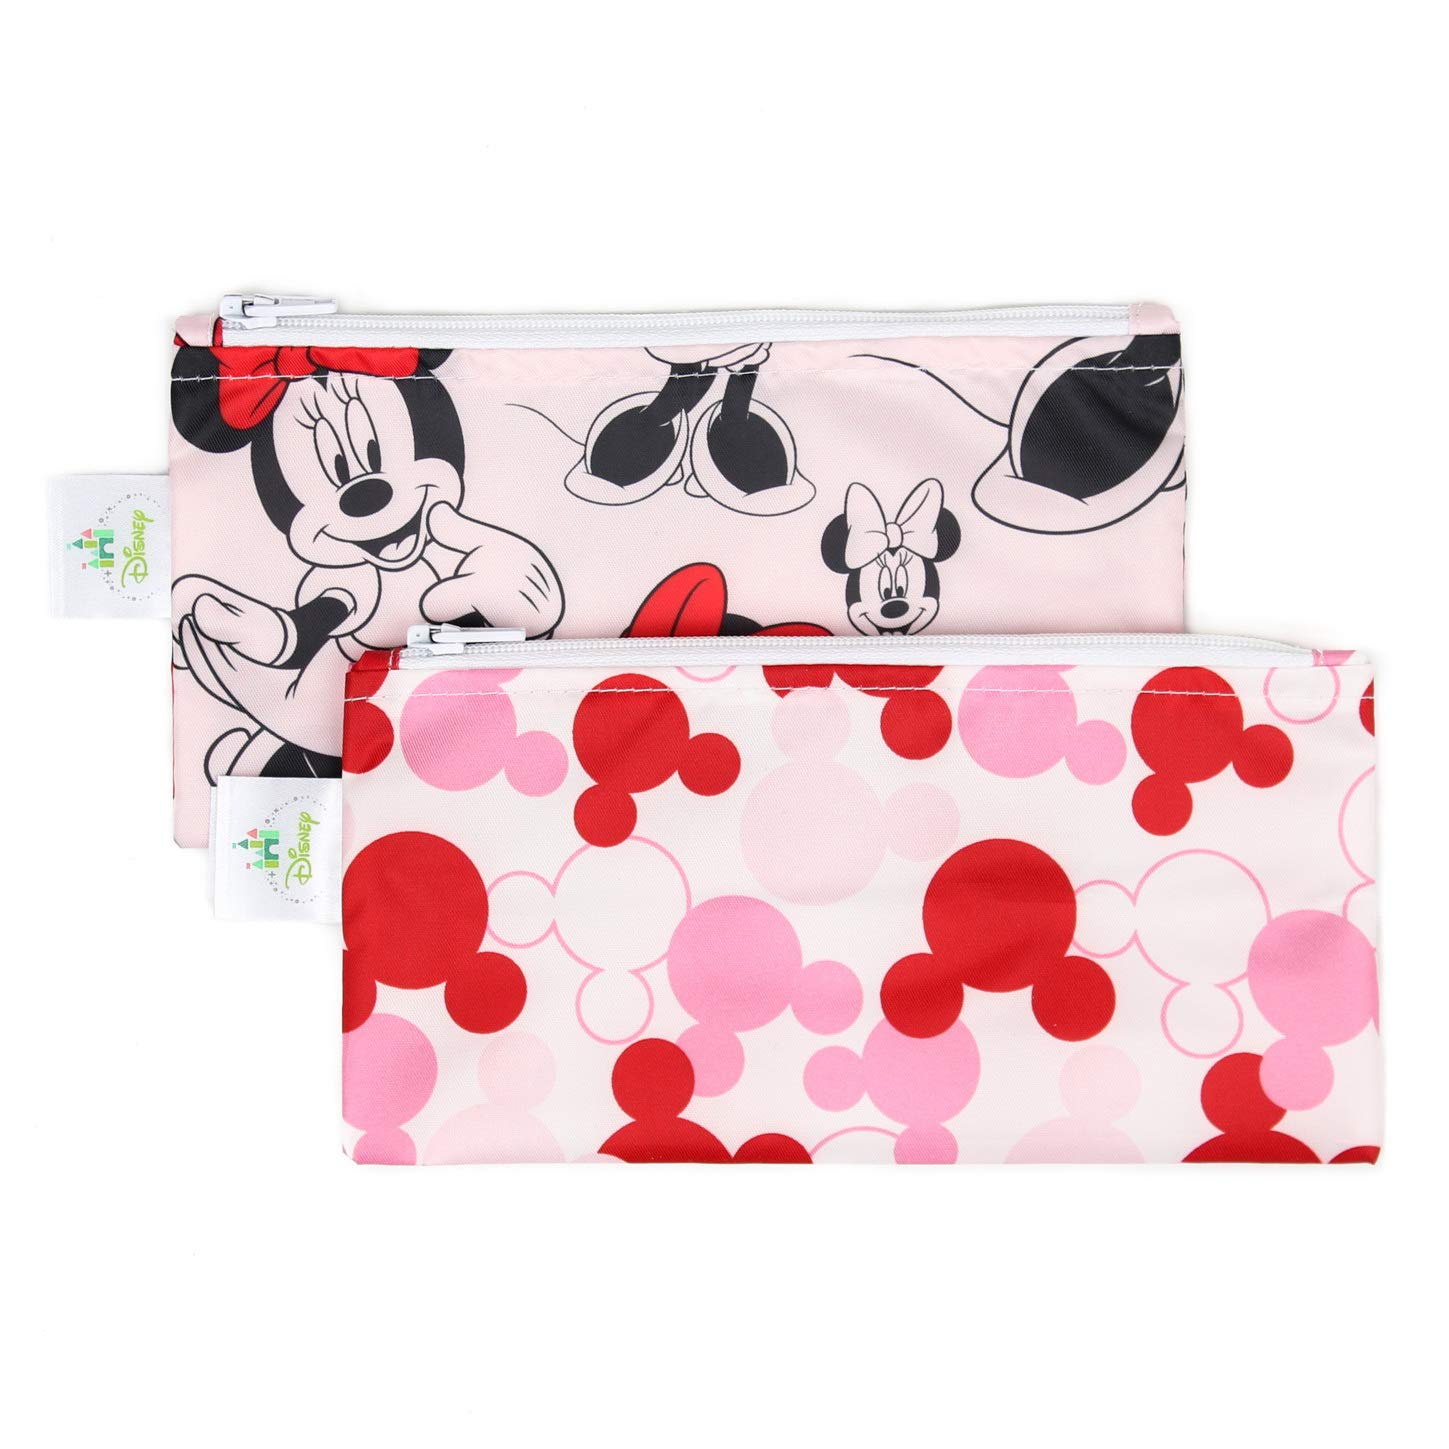 Bumkins Disney Baby Reusable Snack Bag, Minnie Mouse Icon, Small, 2 Count SBS2-DMN1